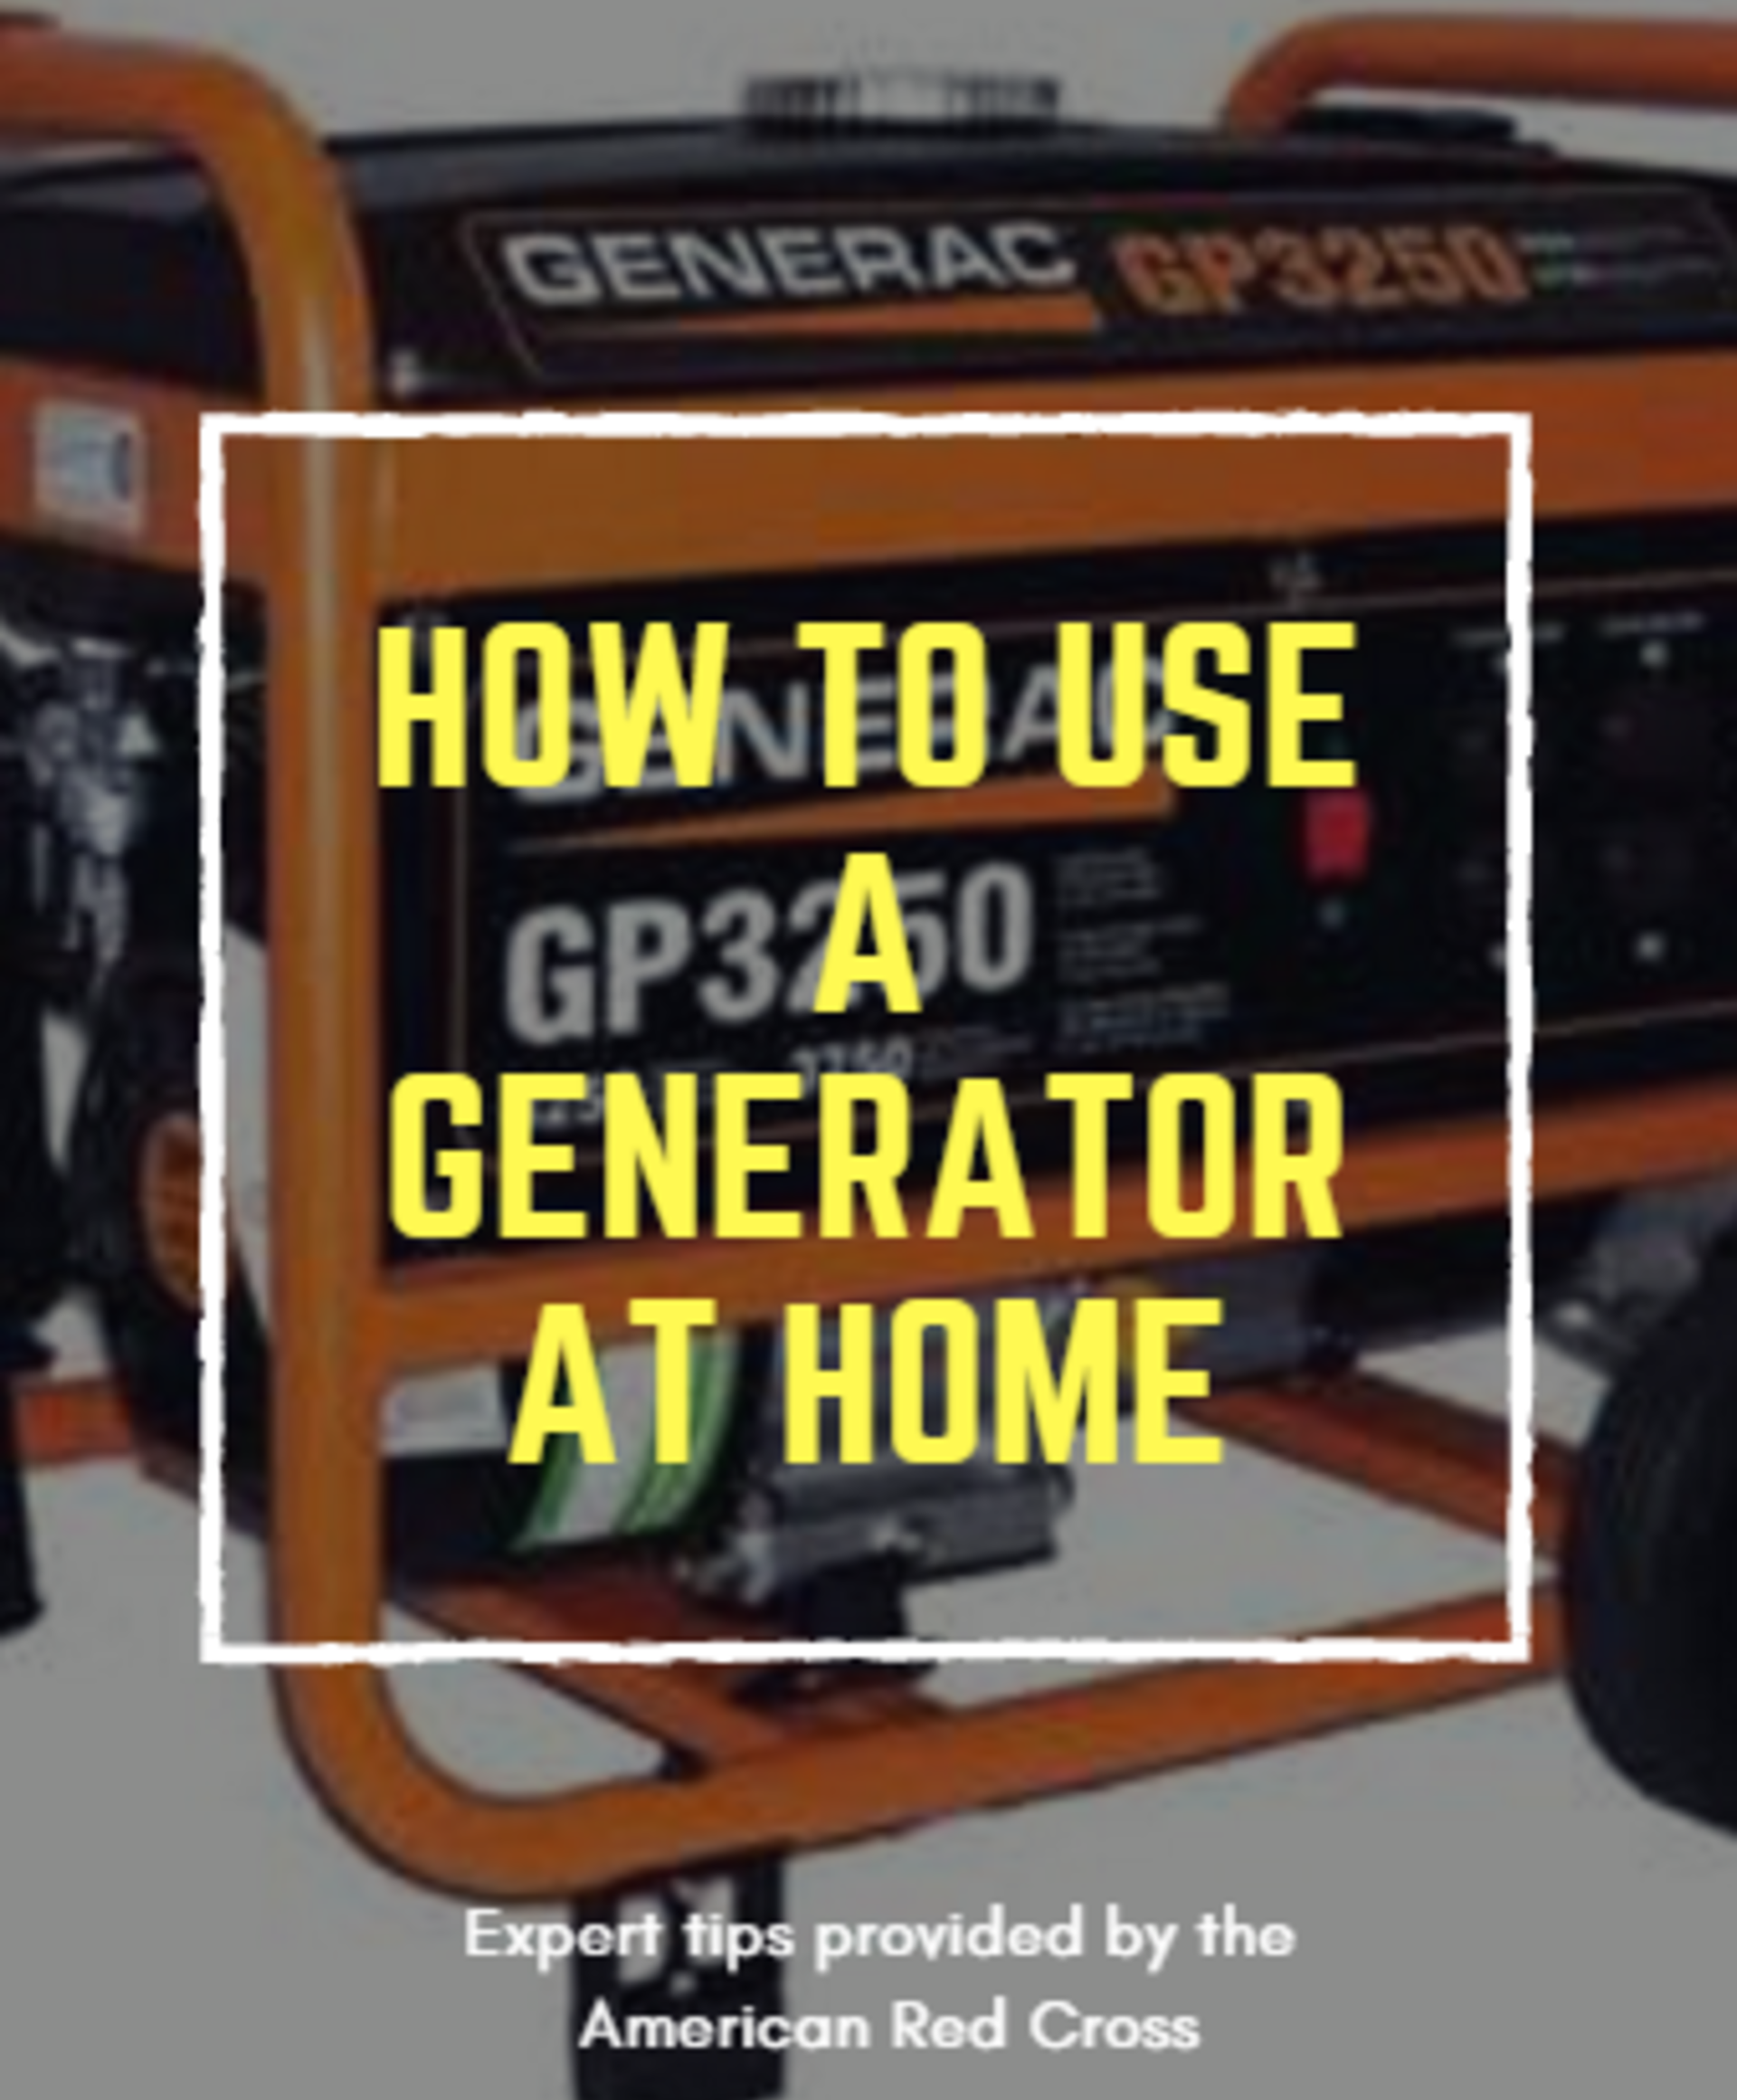 Quick Tips for Using a Generator at Home